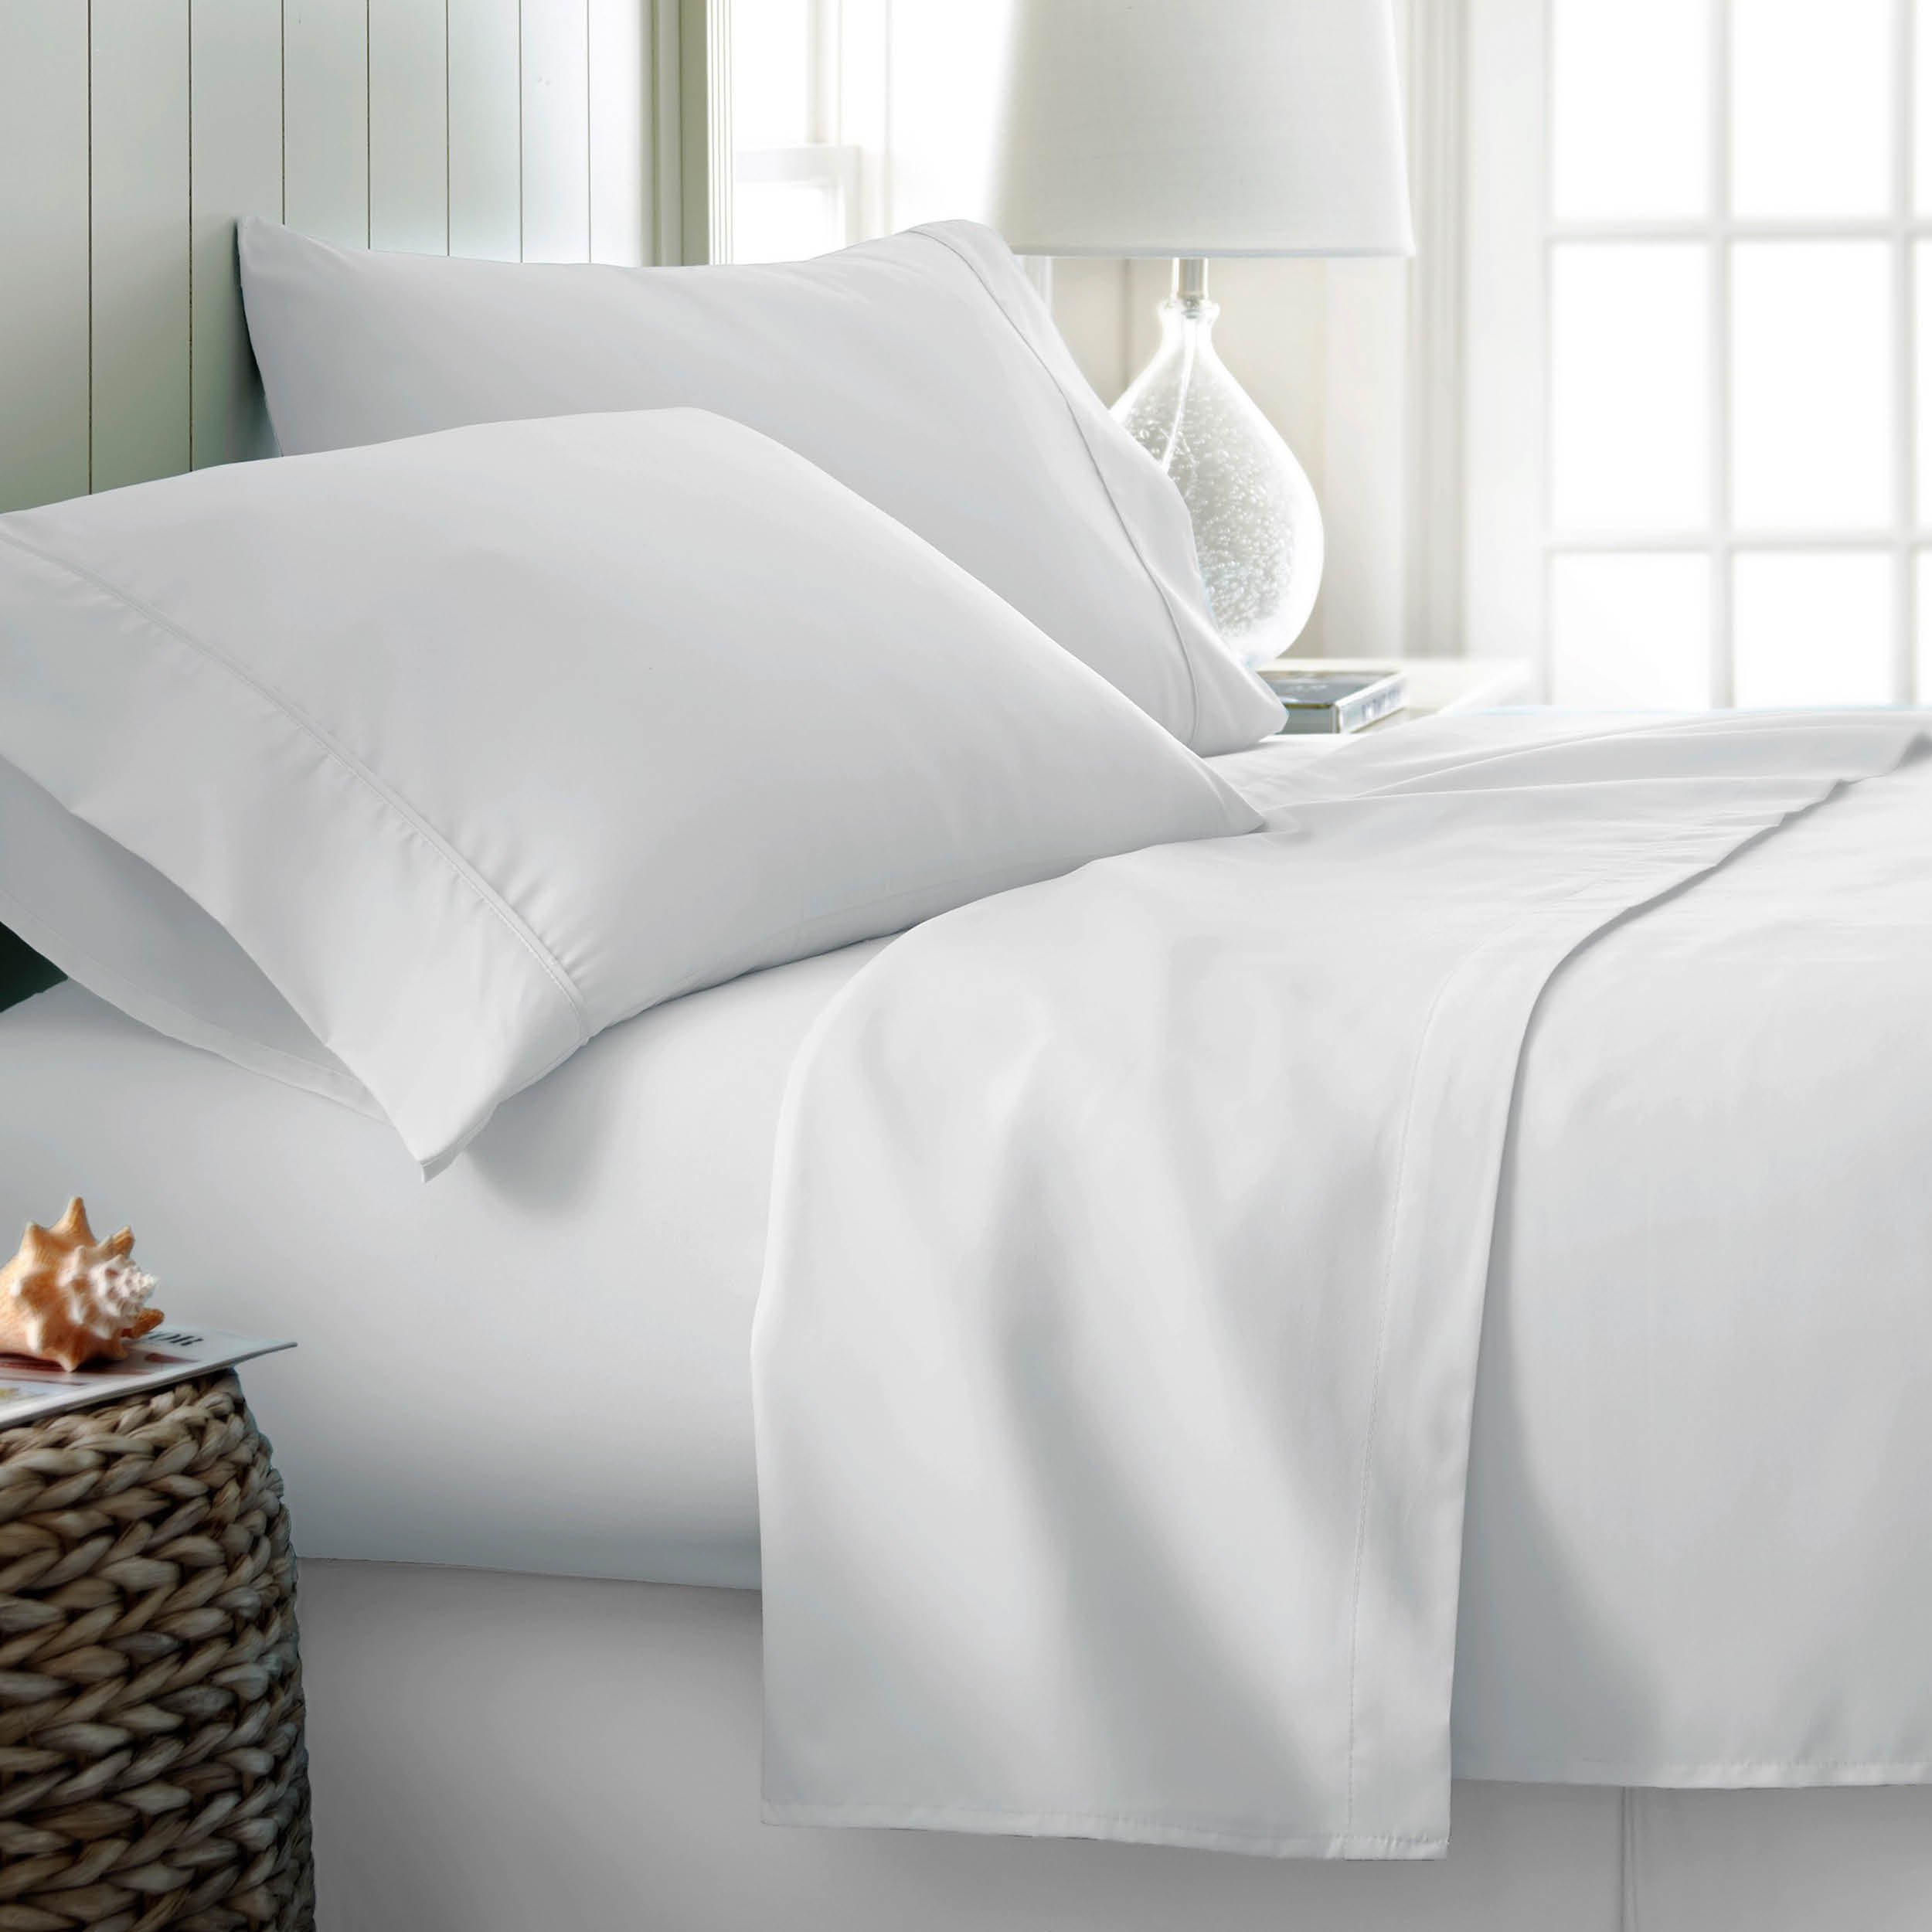 Bed sheets 600x600